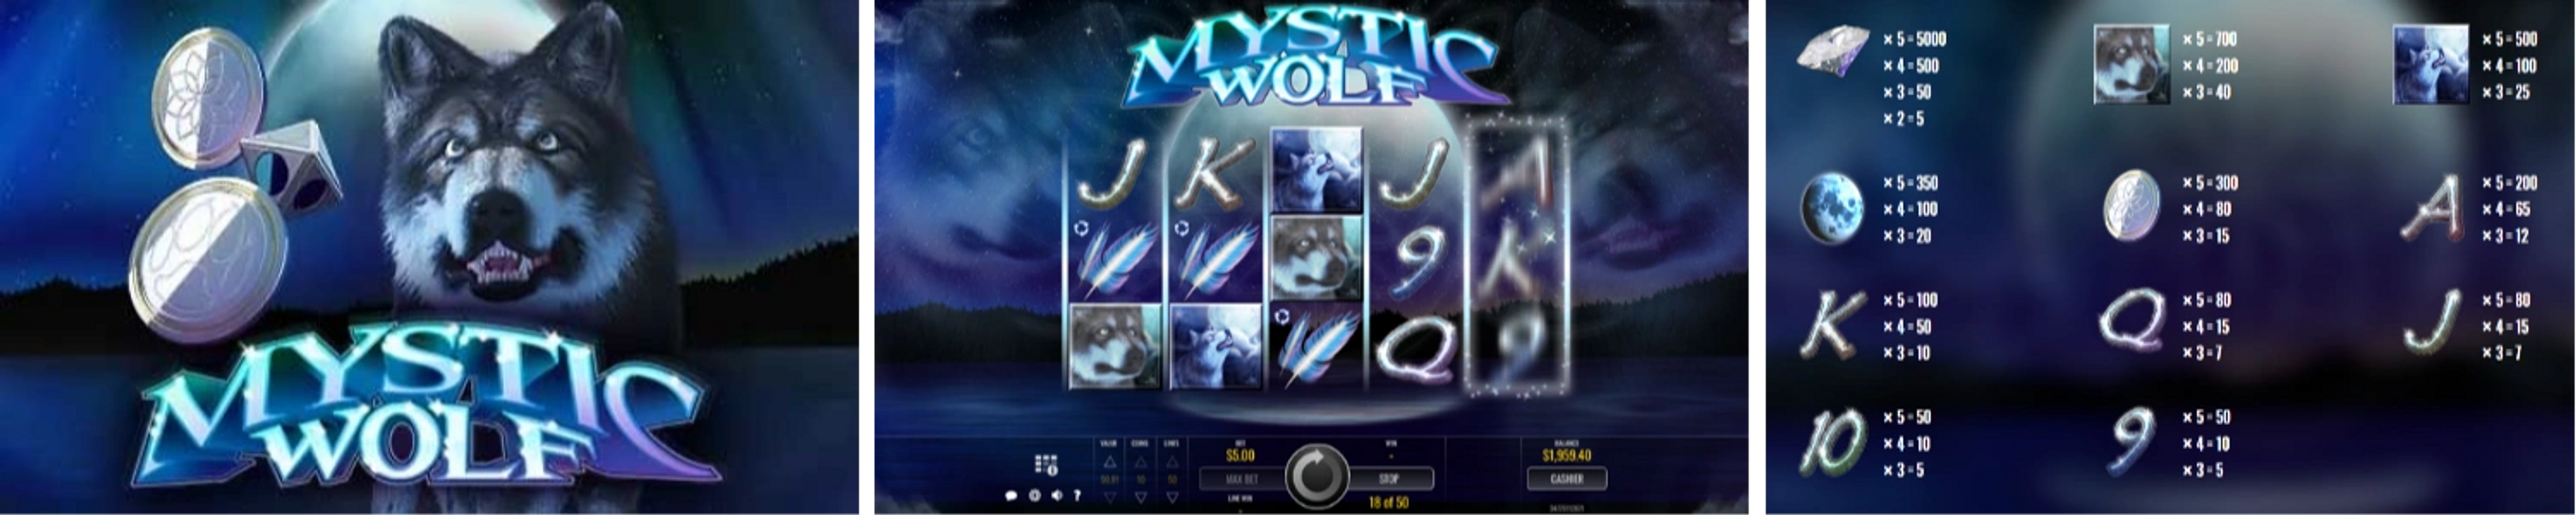 Mystic Wolf Online Video Slot Review